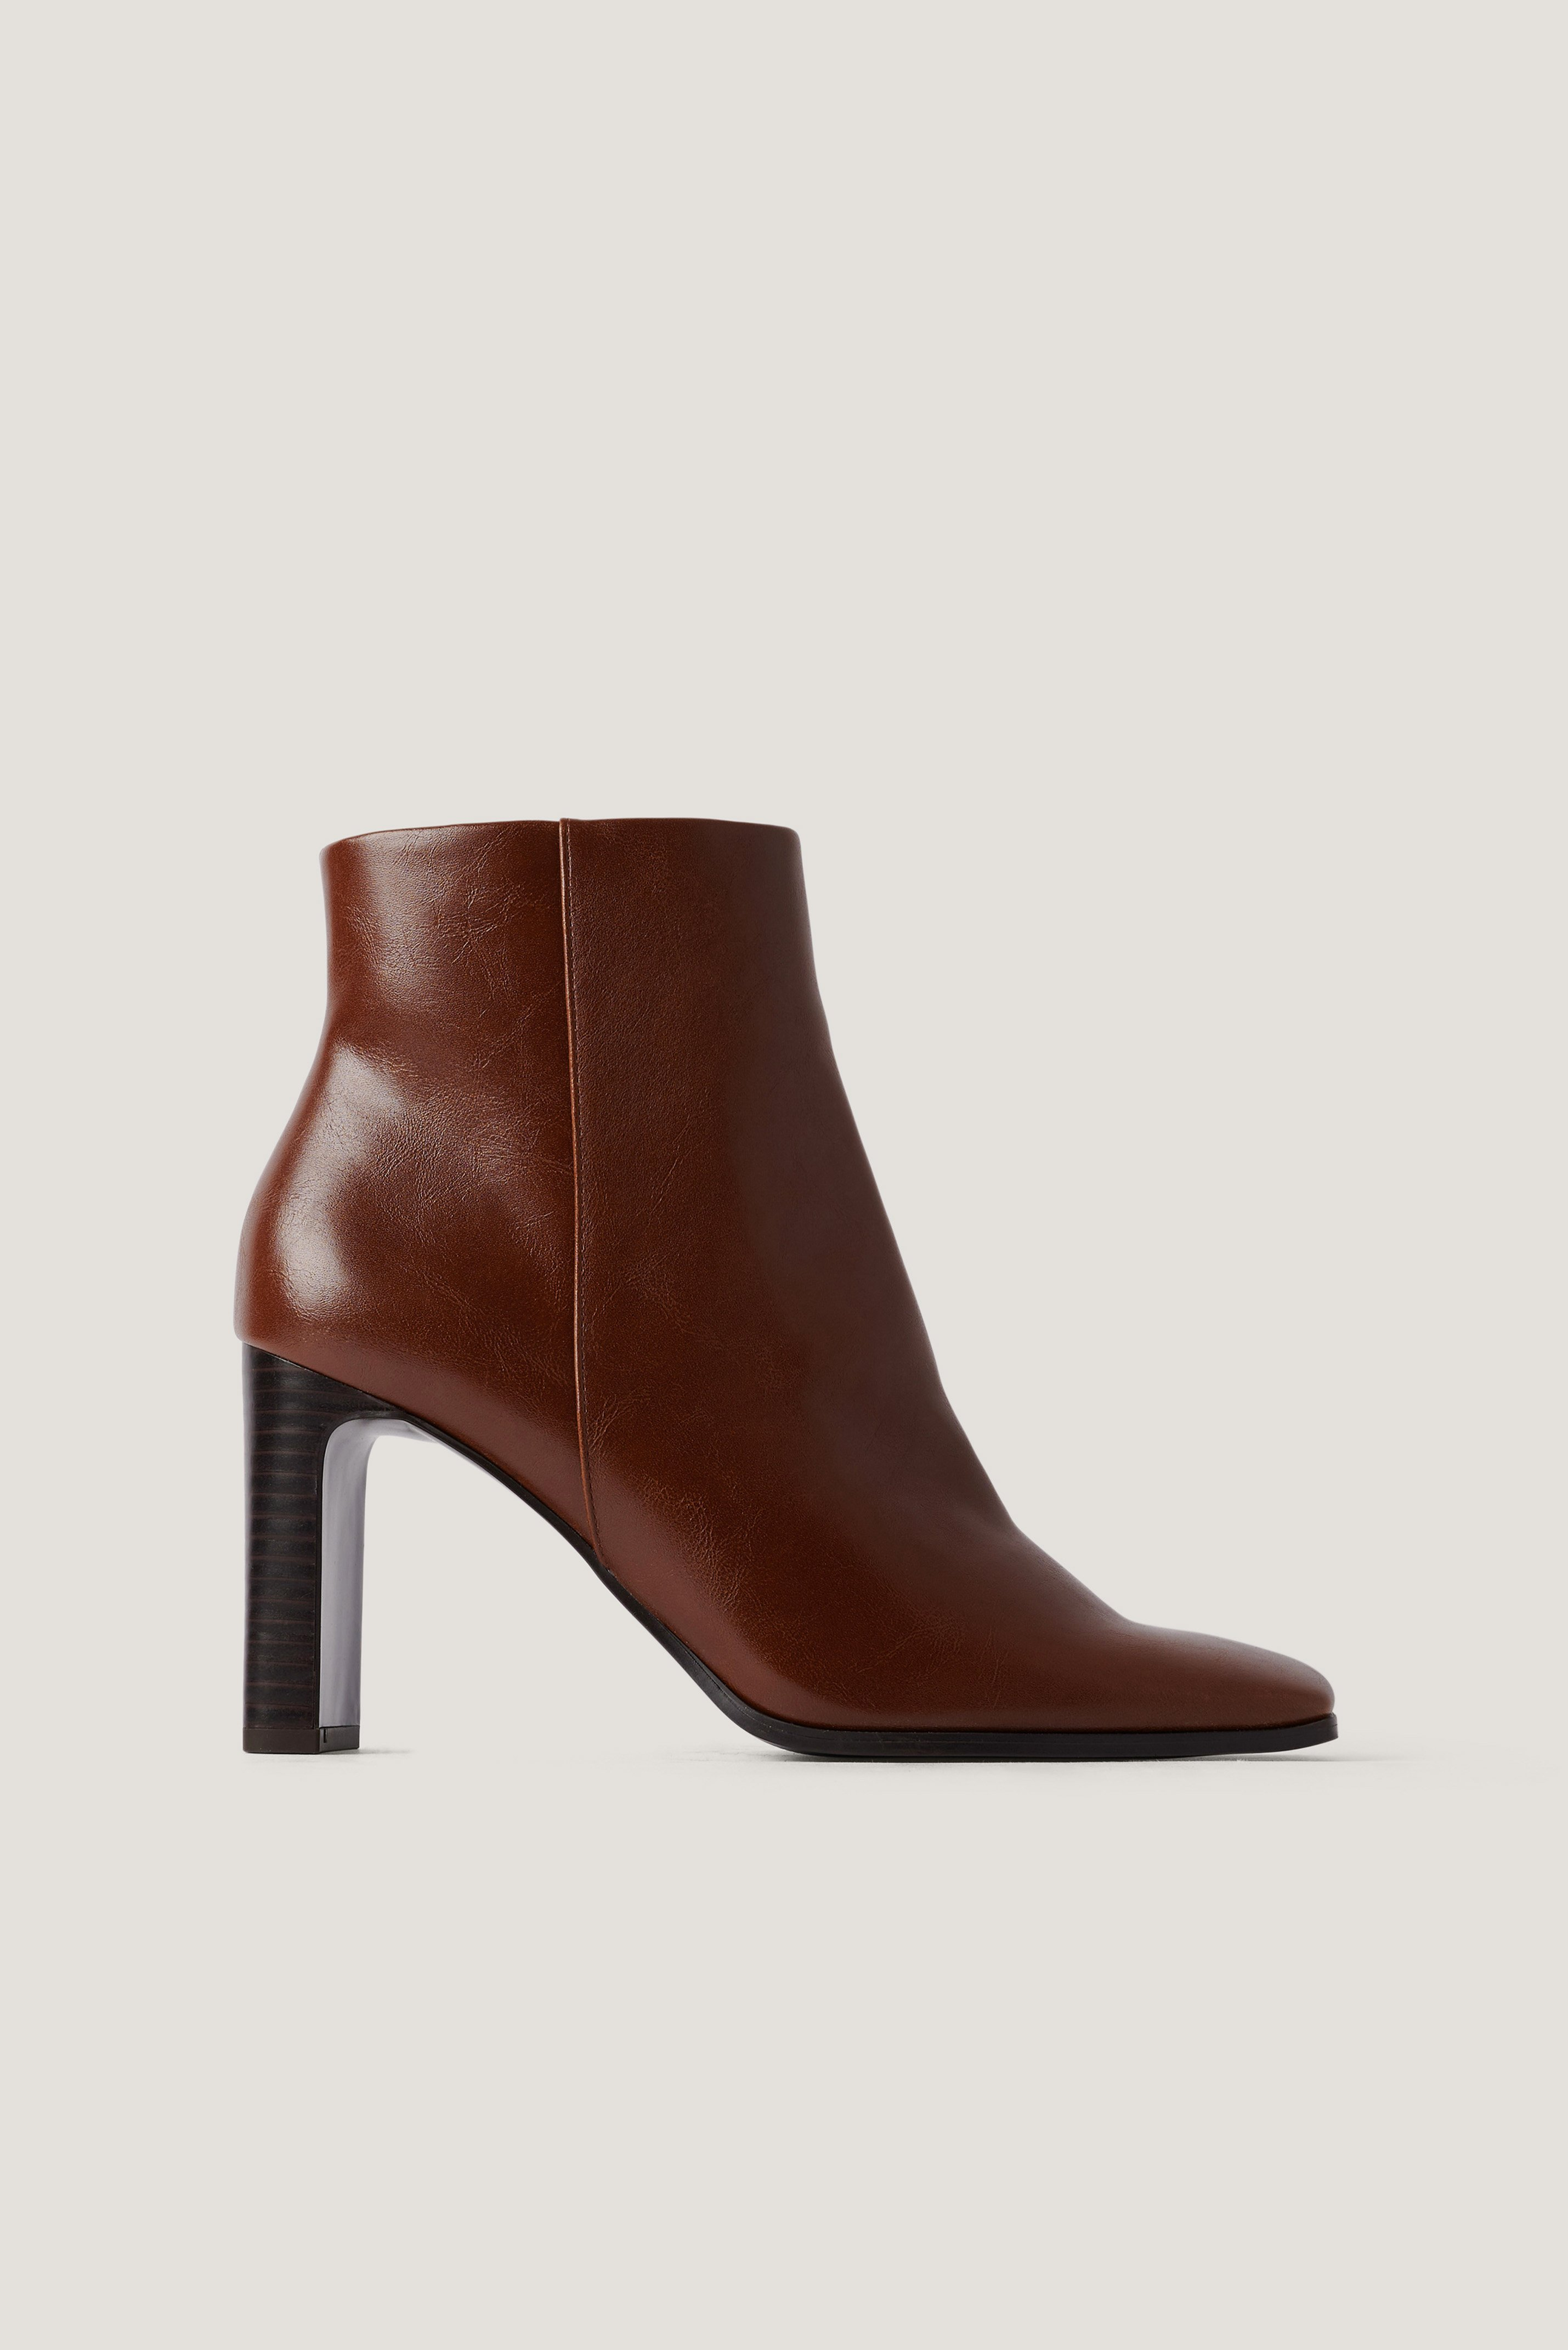 Mango Tierra Ankle Boots - Brown